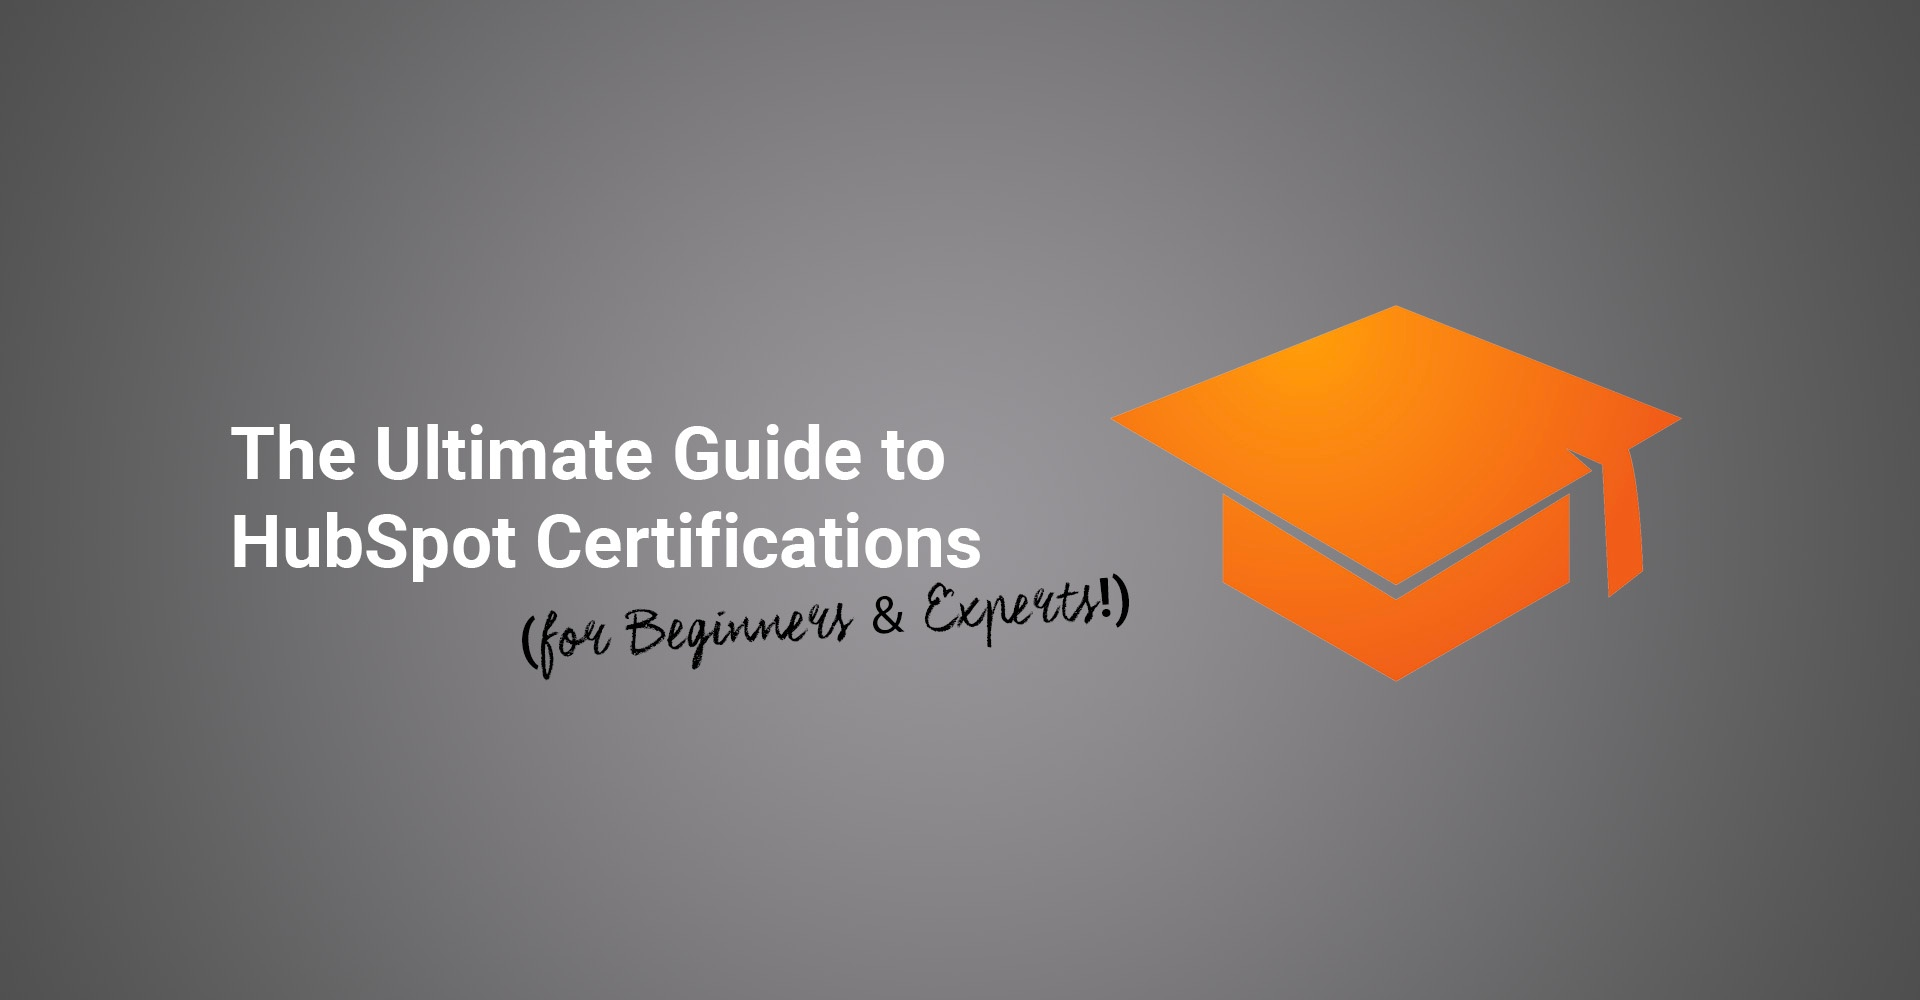 The Ultimate Guide to HubSpot Certifications (for Beginners & Experts!)